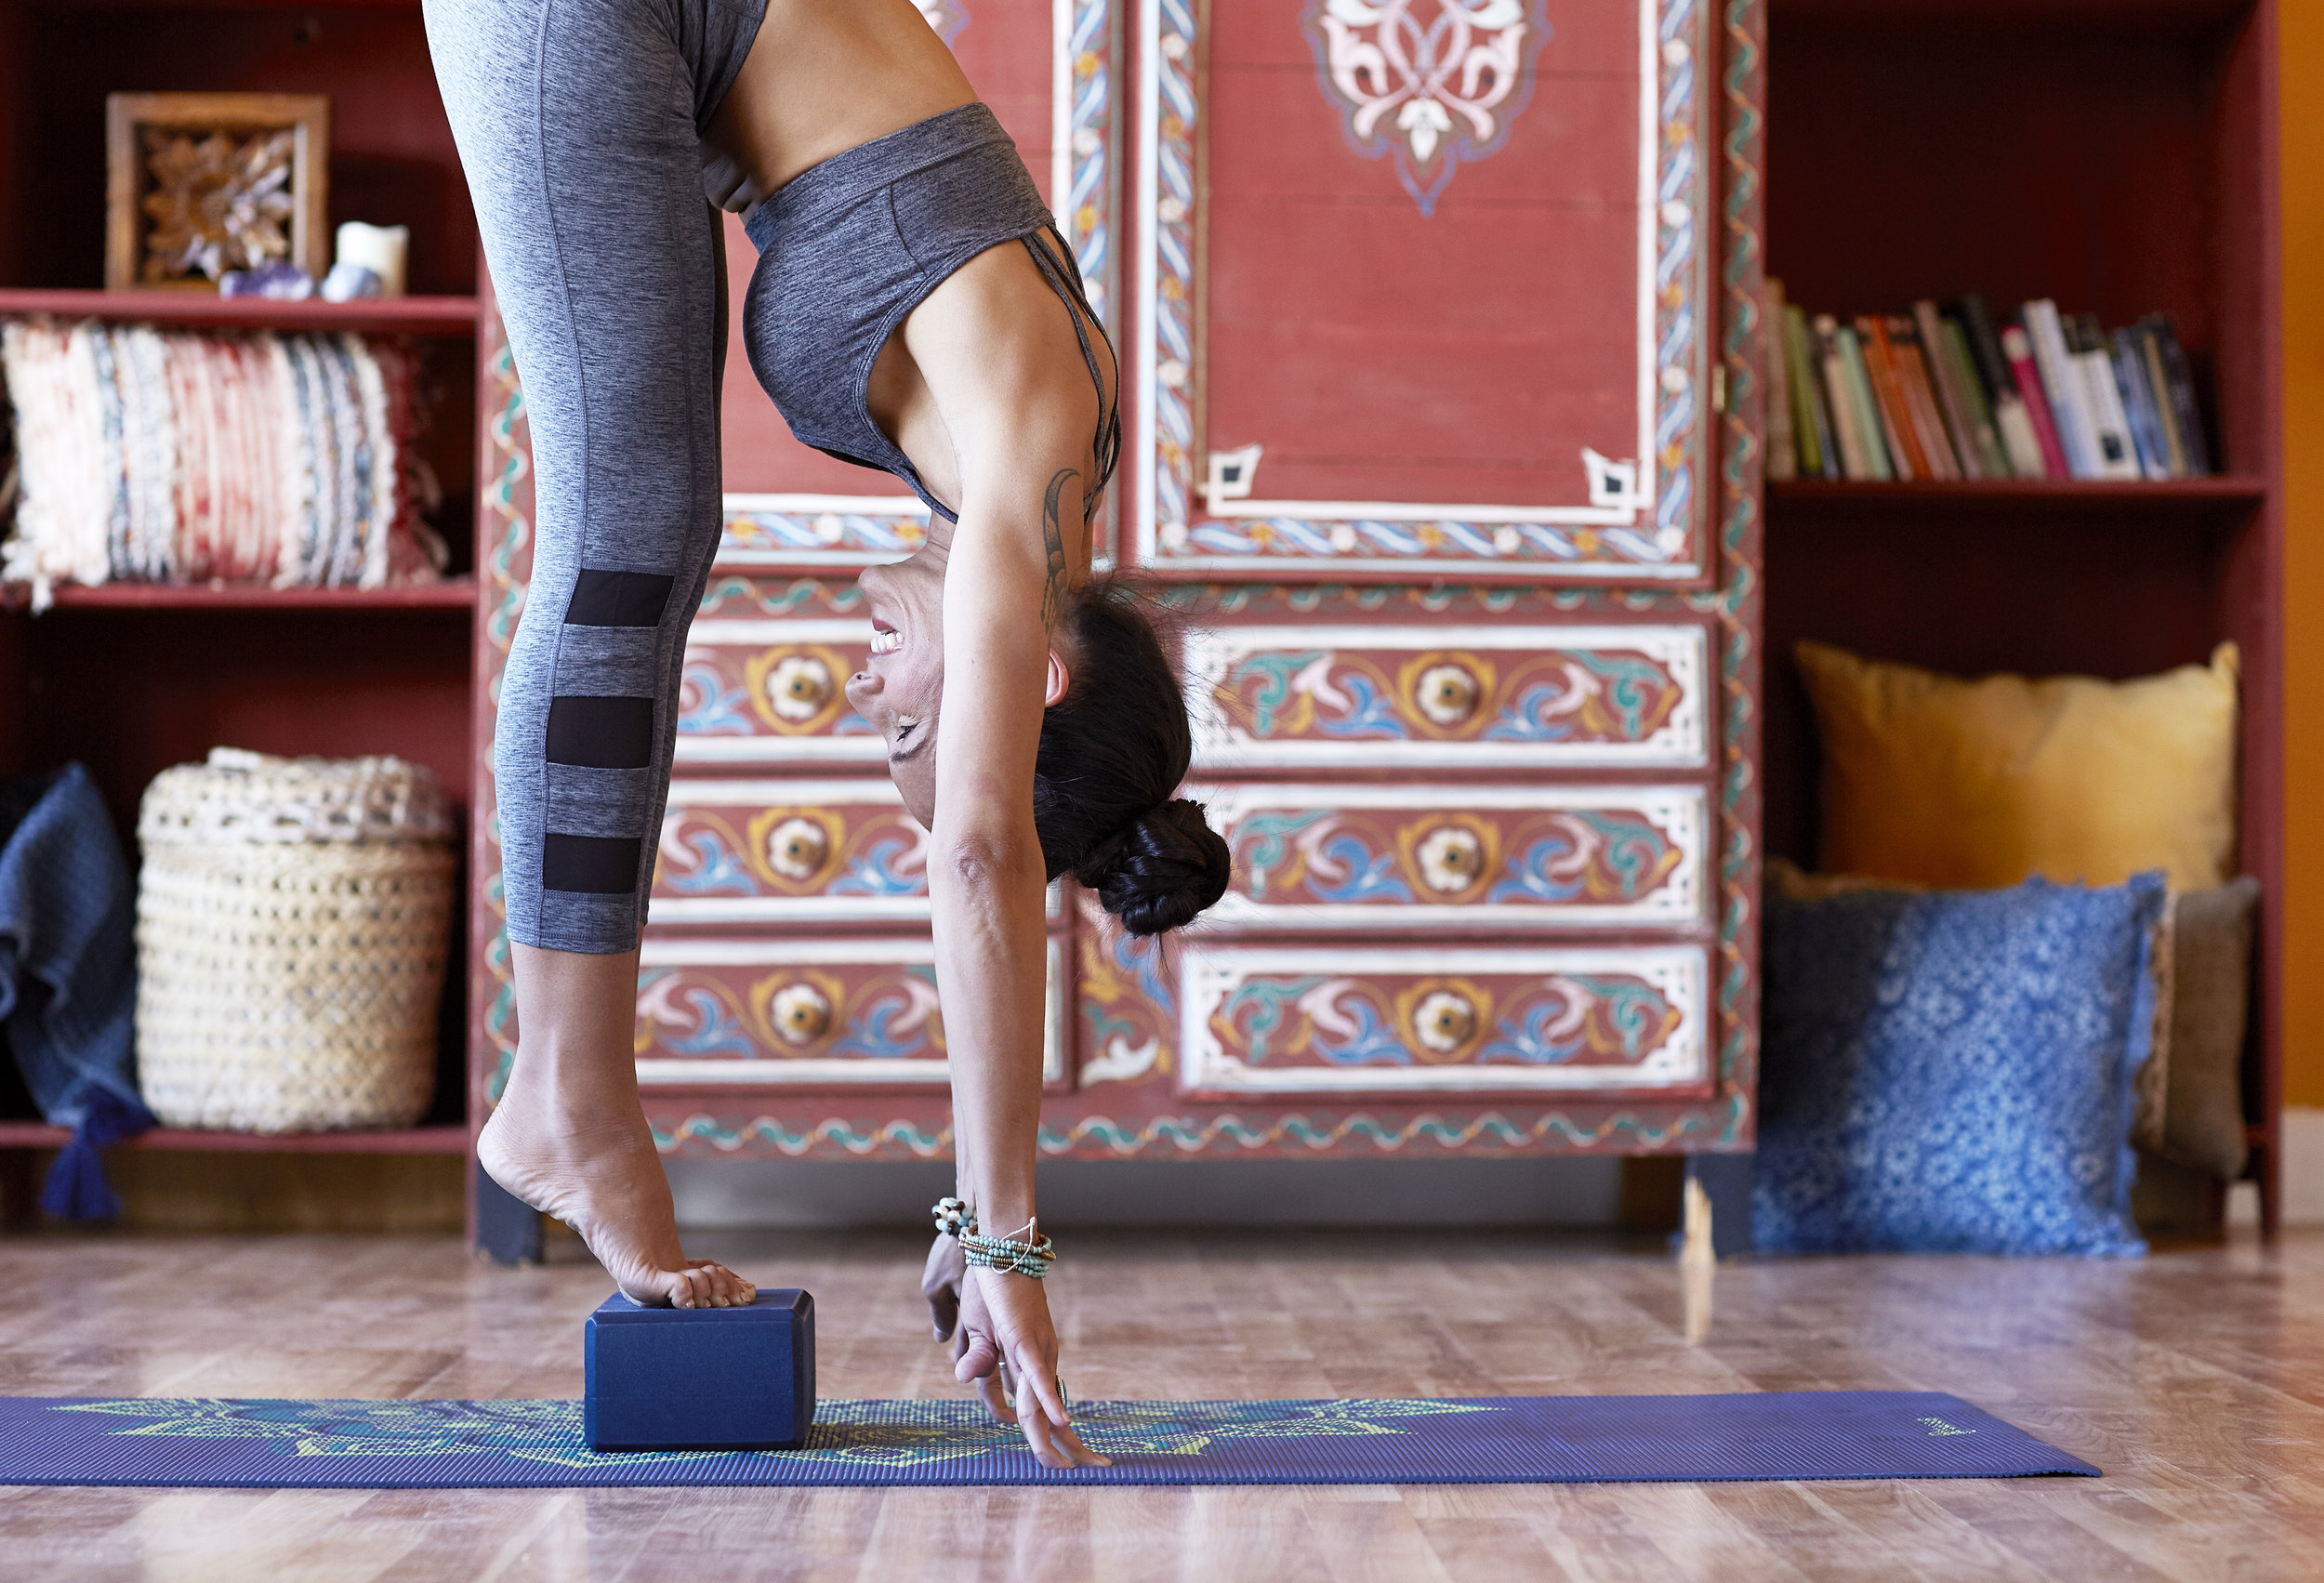 Photo by Gaiam Americas, Inc.